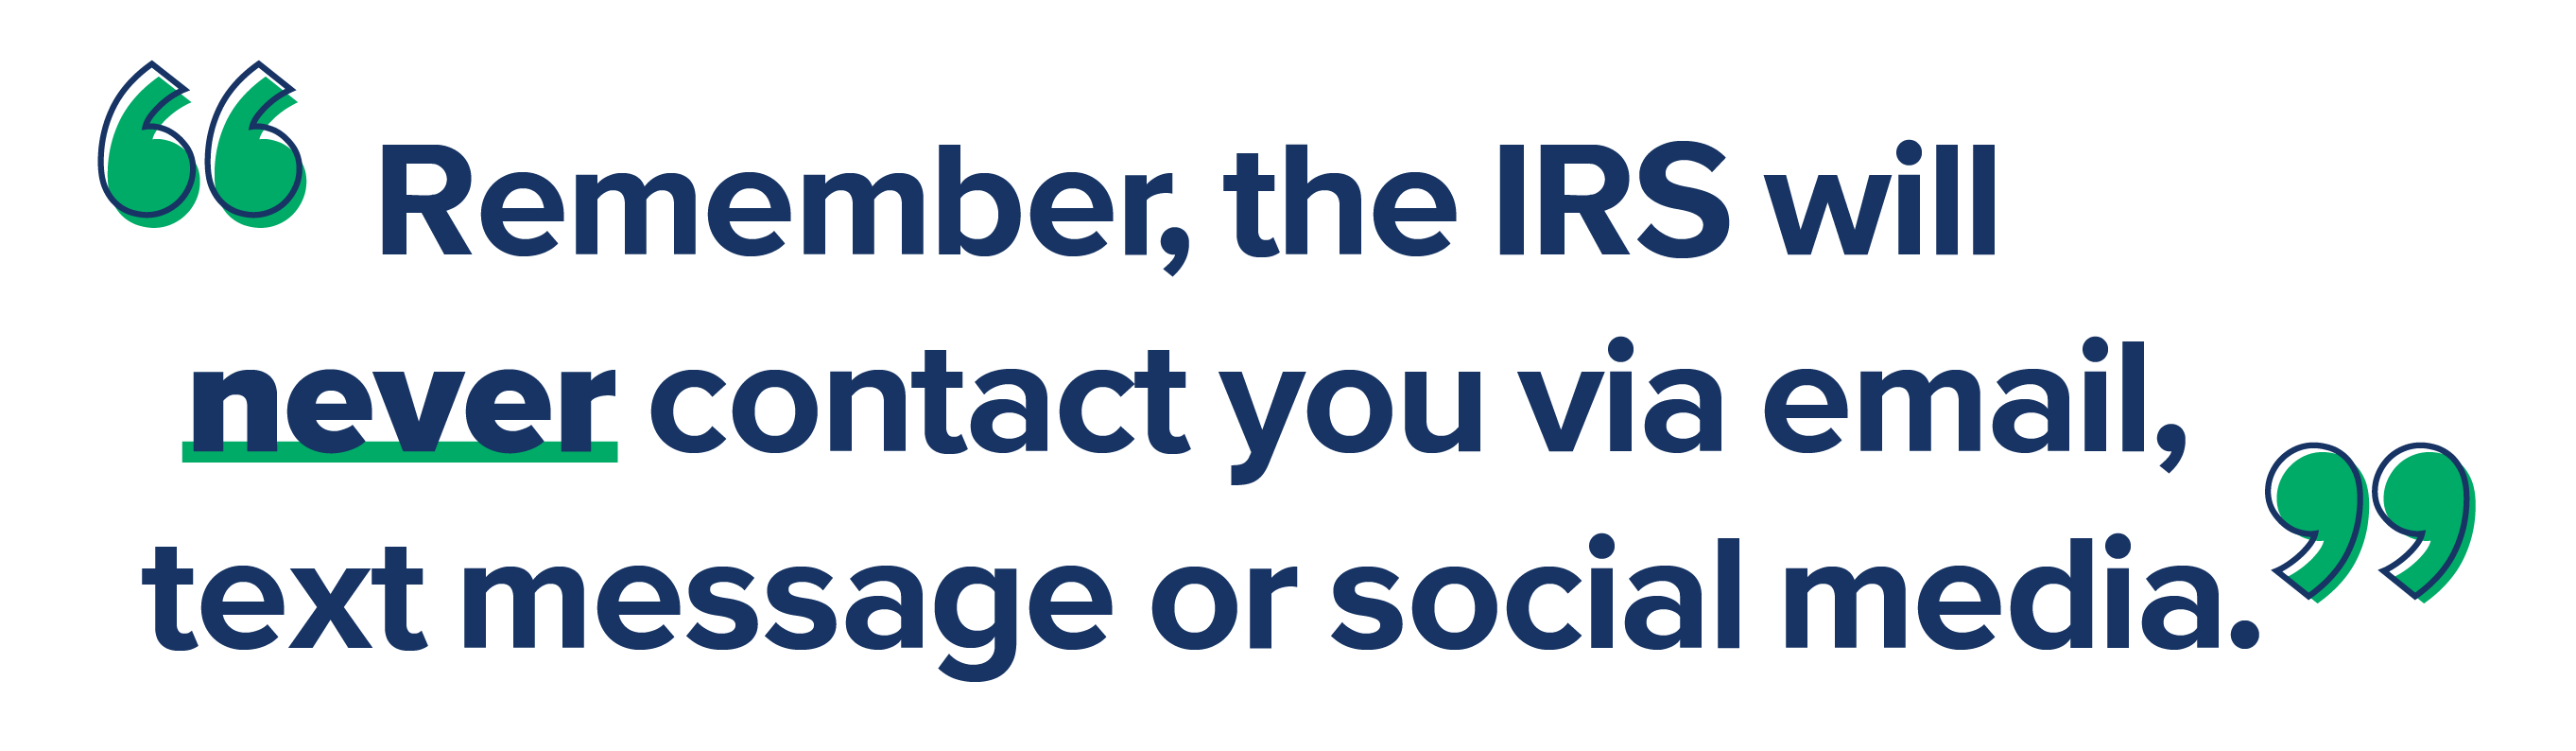 Remember, the IRS will never contact you via email, text message or social media.